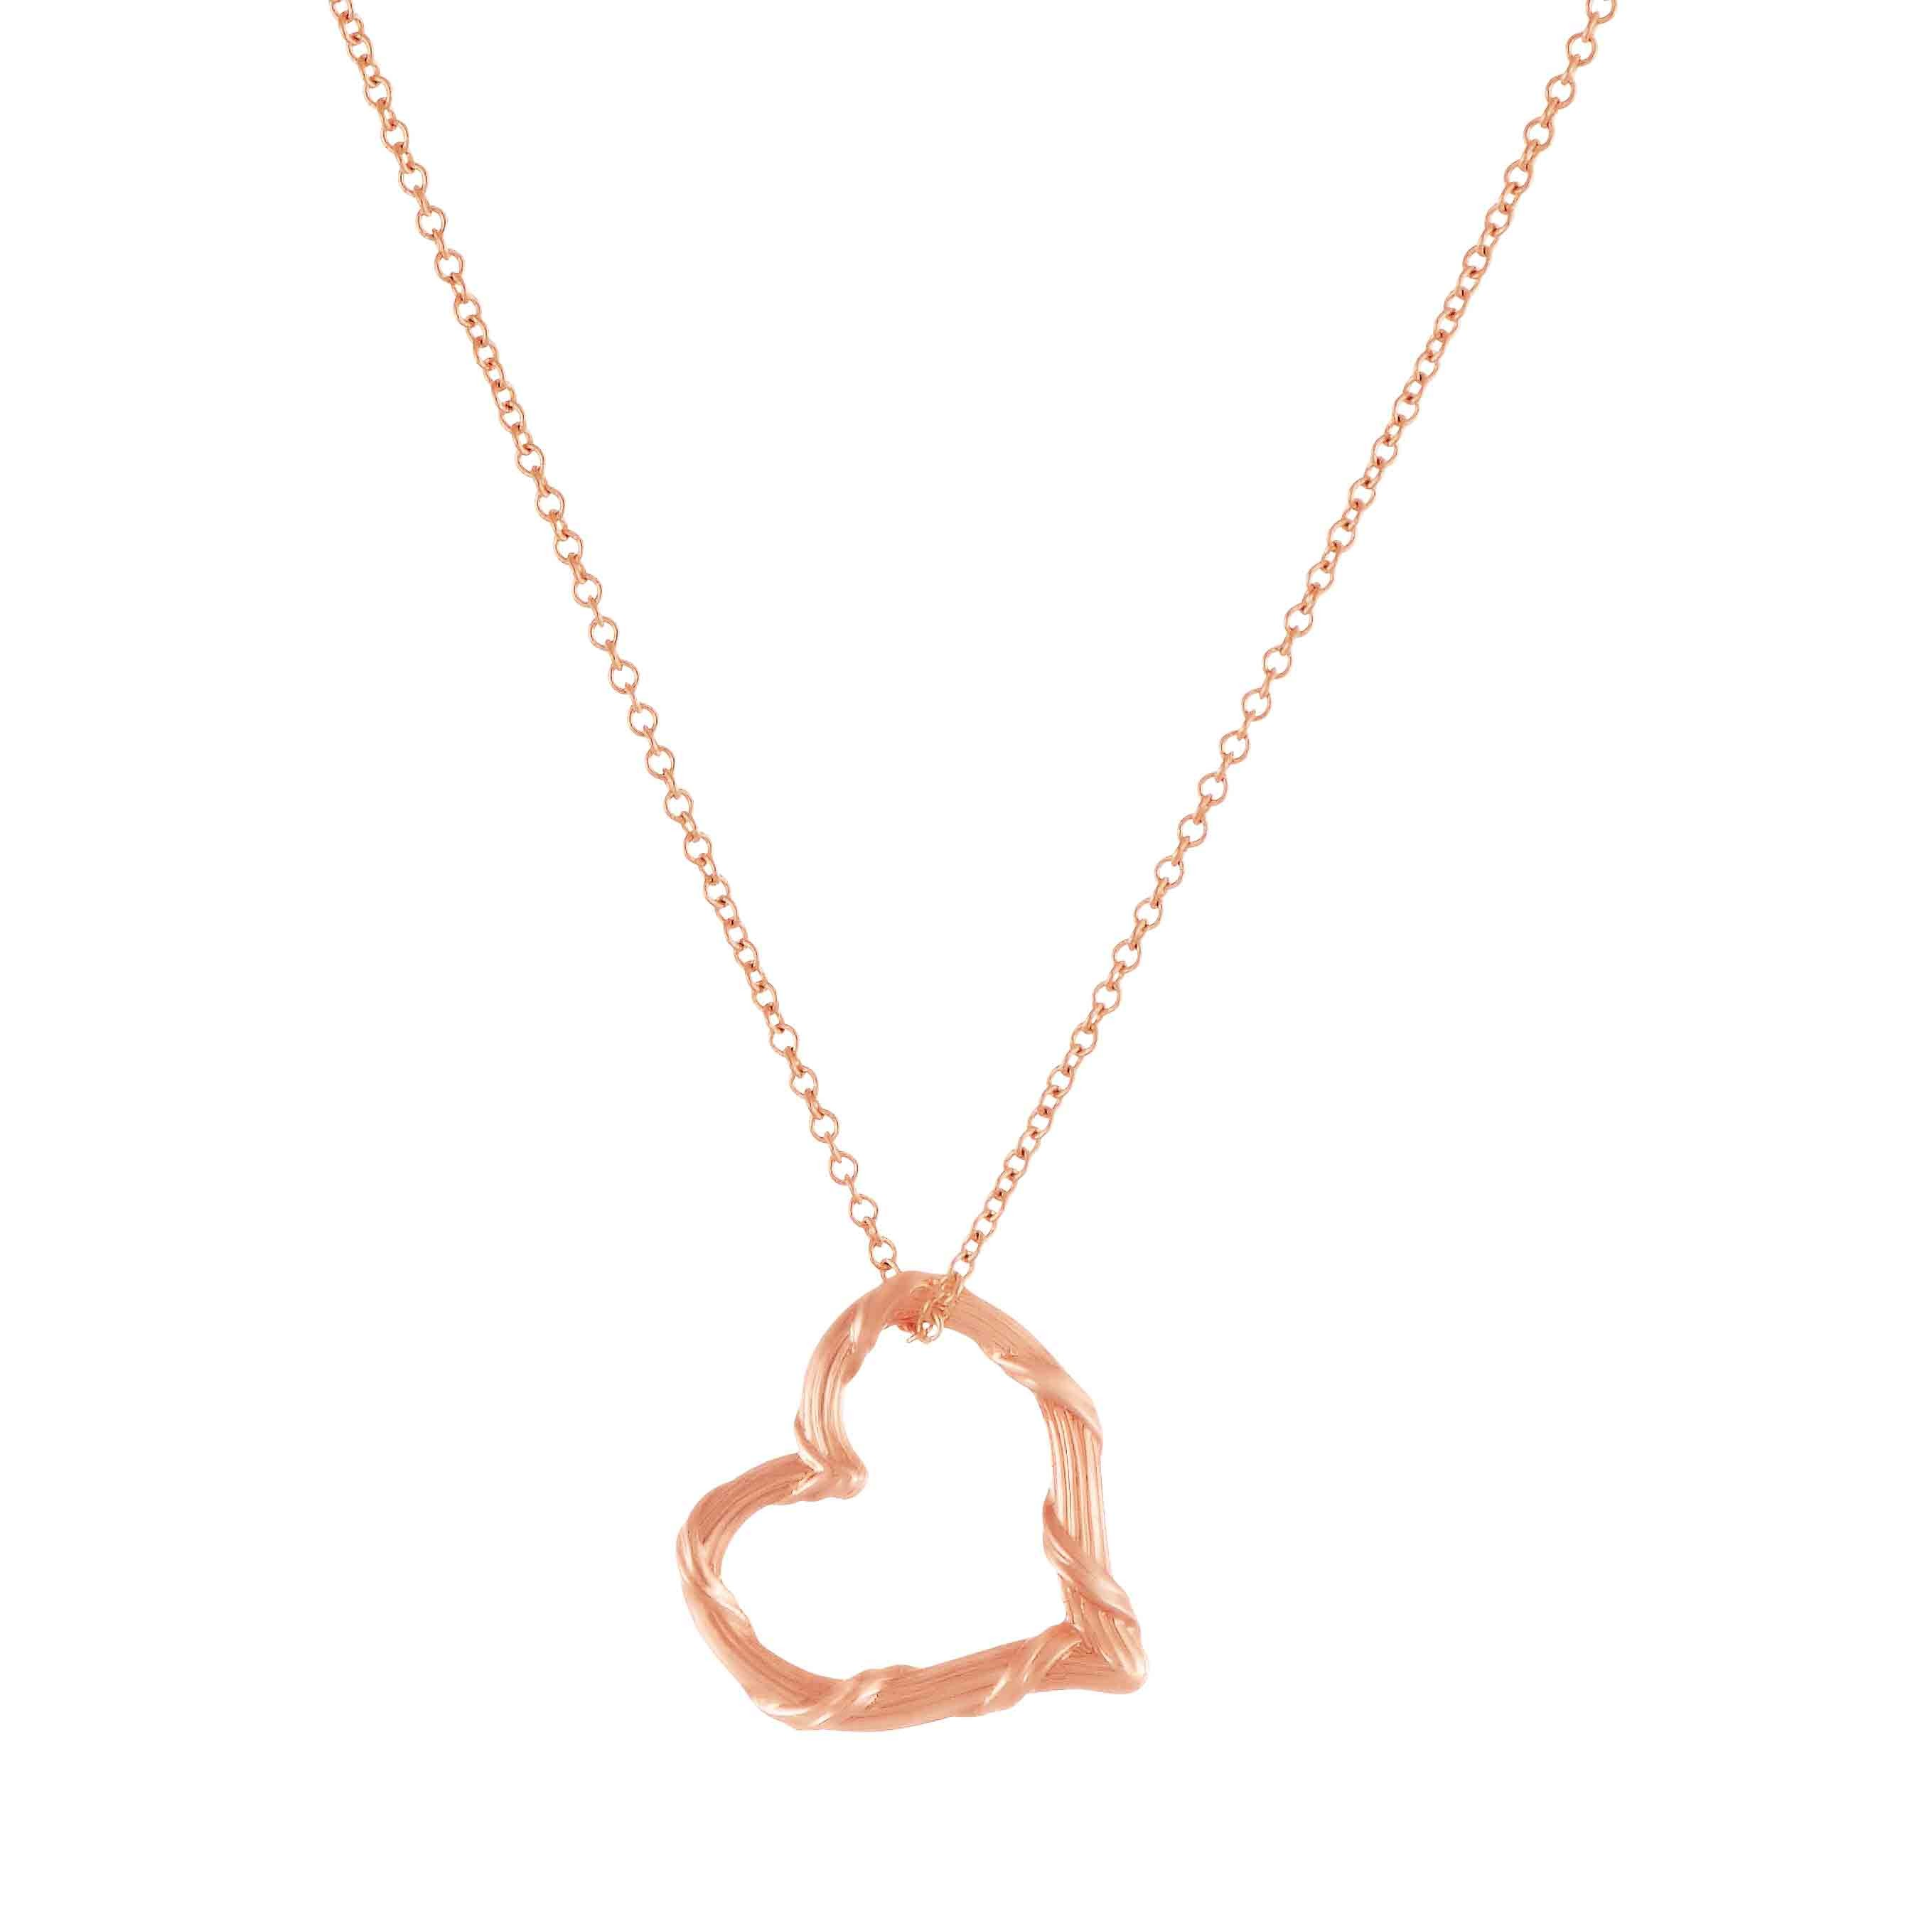 18k gold pendant necklace for men women rose yellow gold heritage mini floating heart necklace in 18k rose gold 16 chain aloadofball